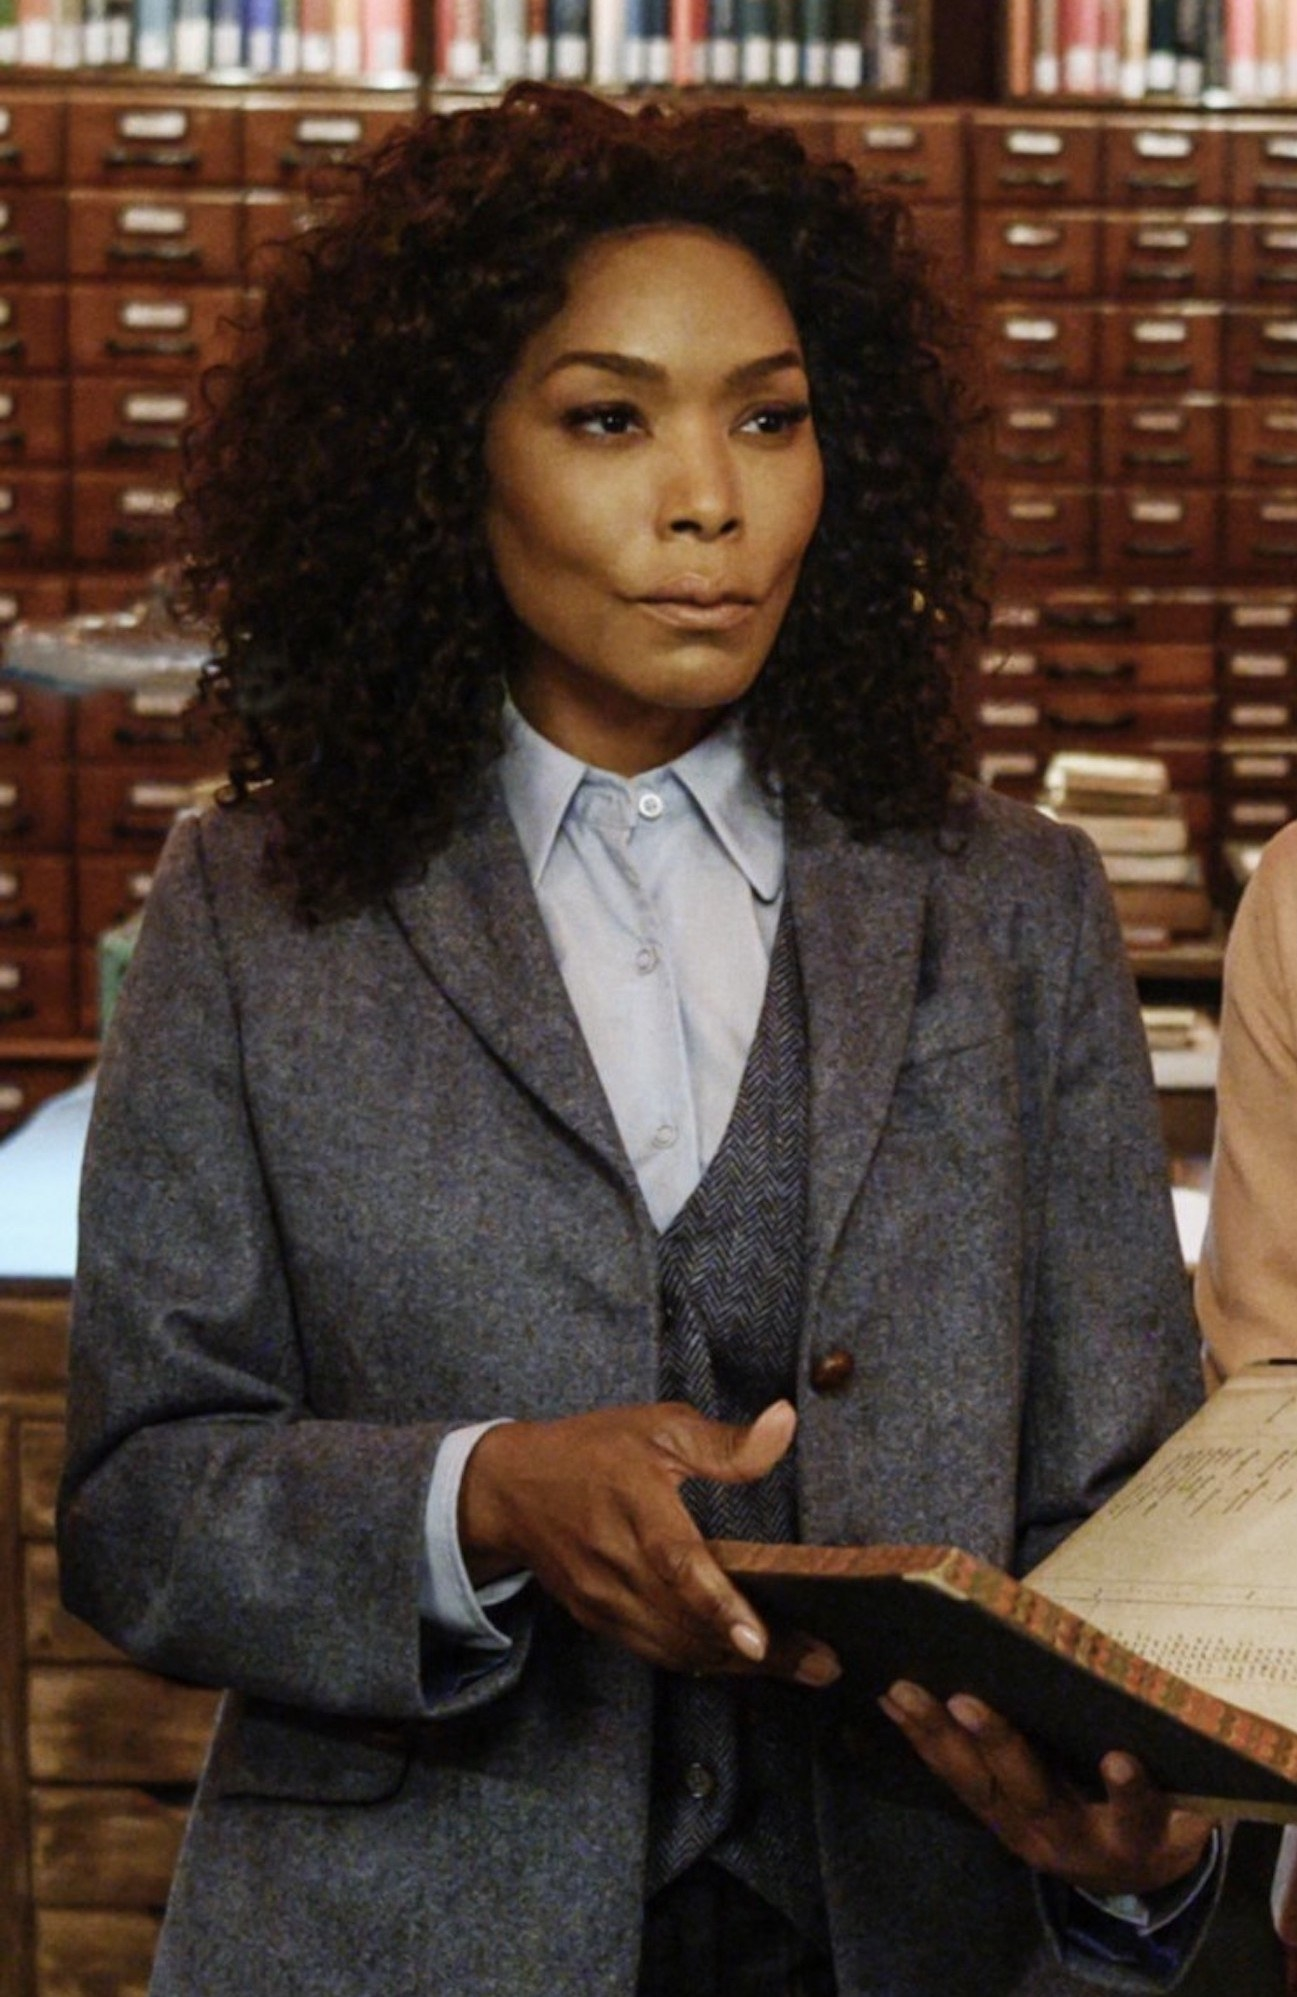 Angela Bassett wearing a three-piece suit while holding a book